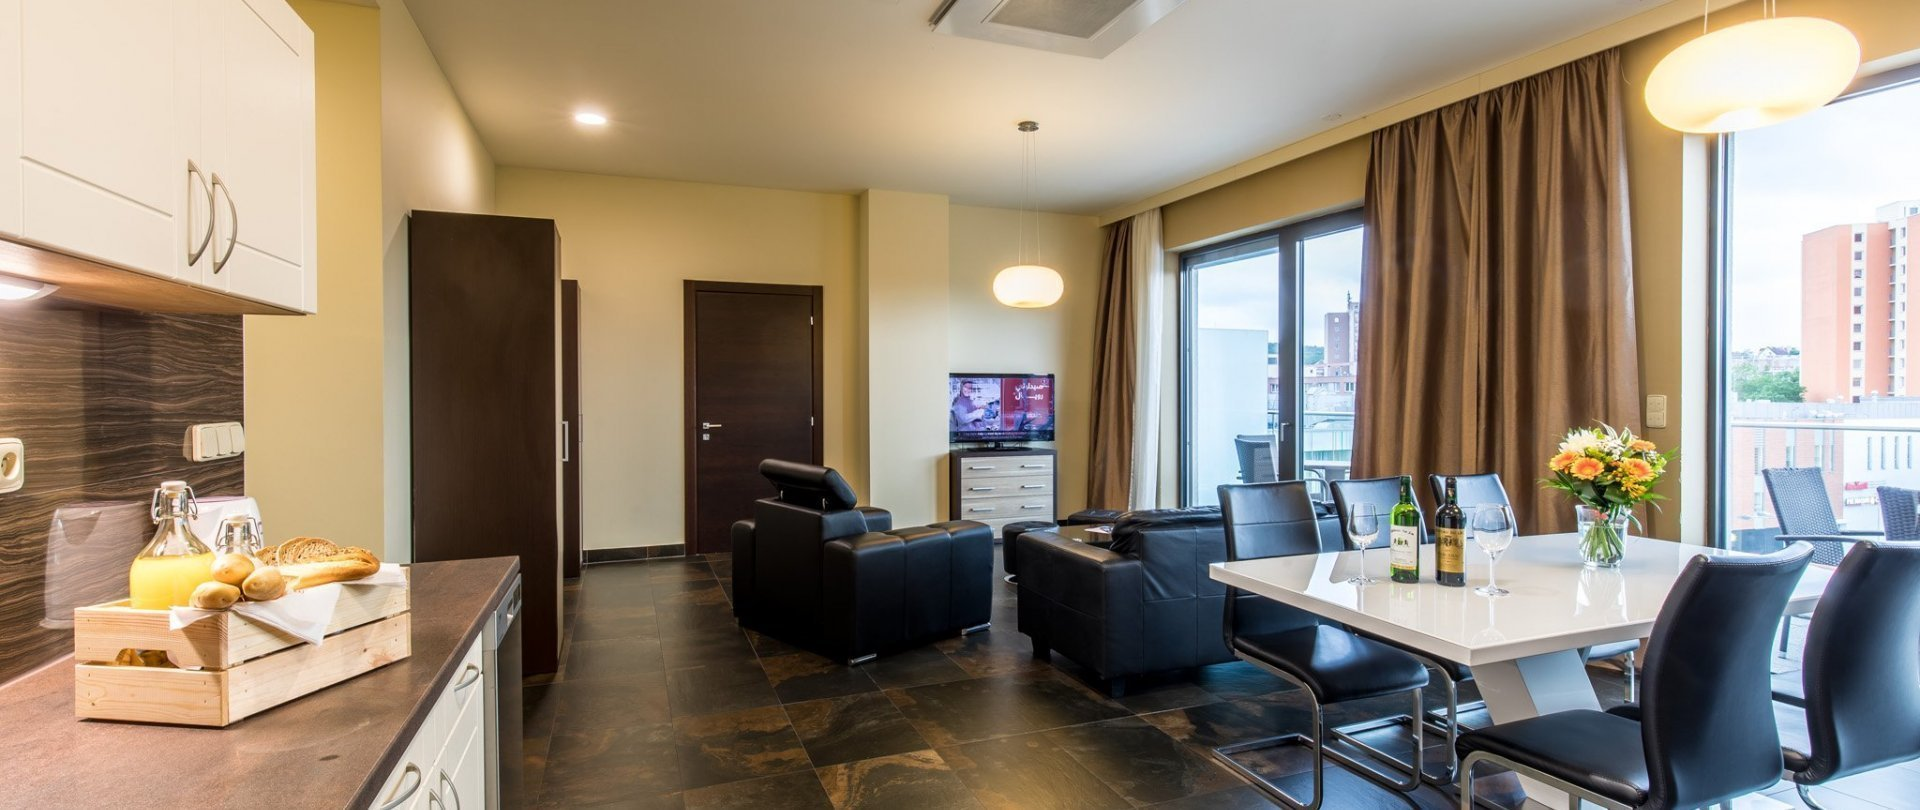 Apartment with 2 bedrooms and balcony